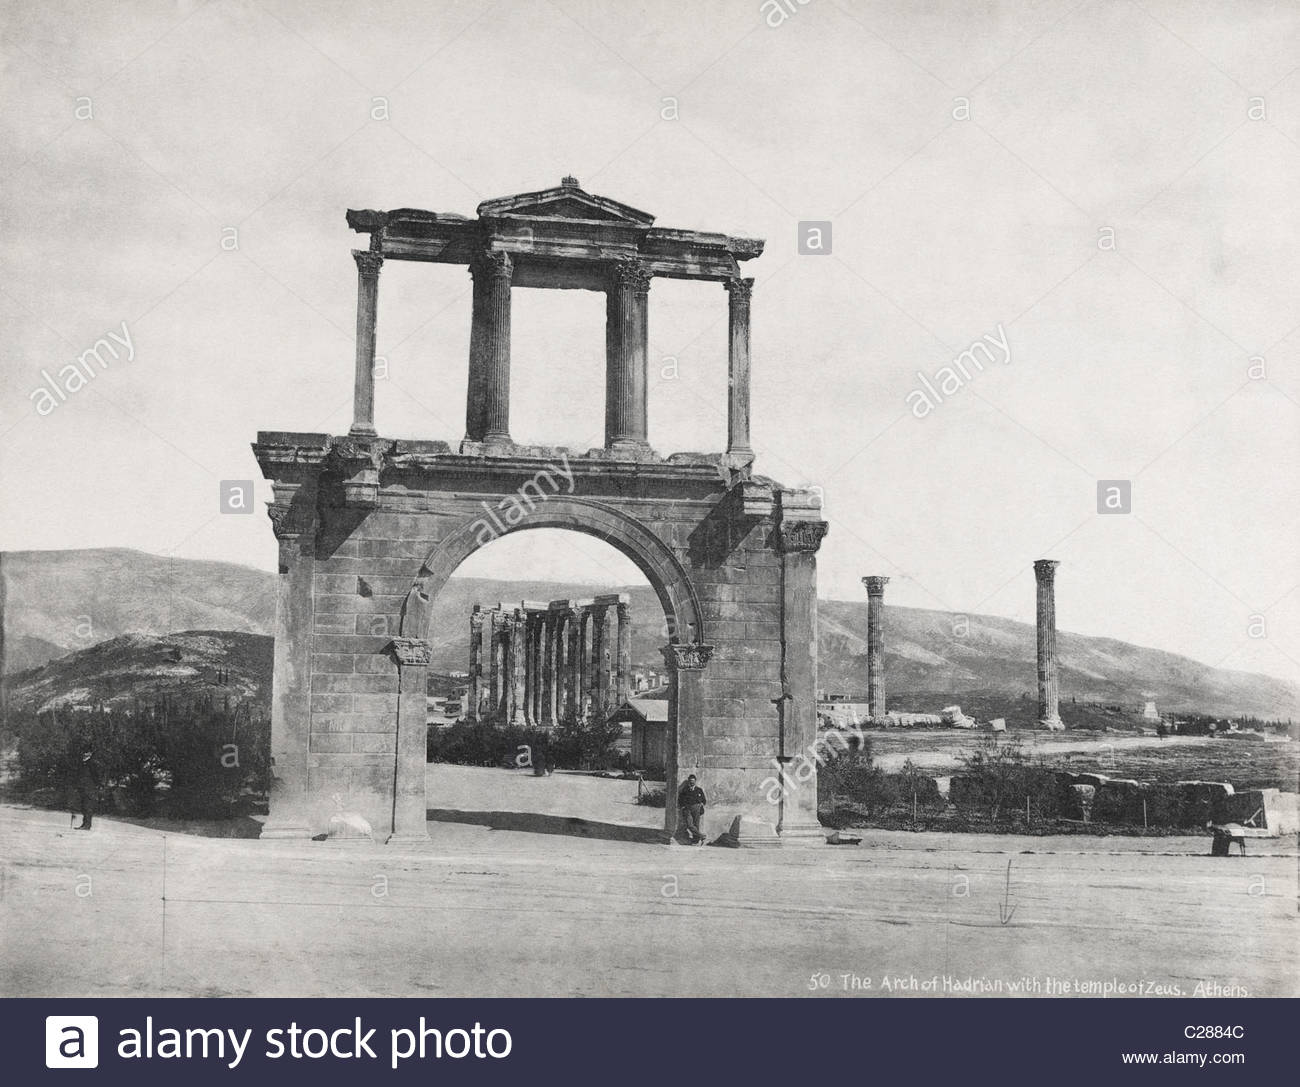 The Arch of Hadrian through which can be seen the ruins of a temple. - Stock Image